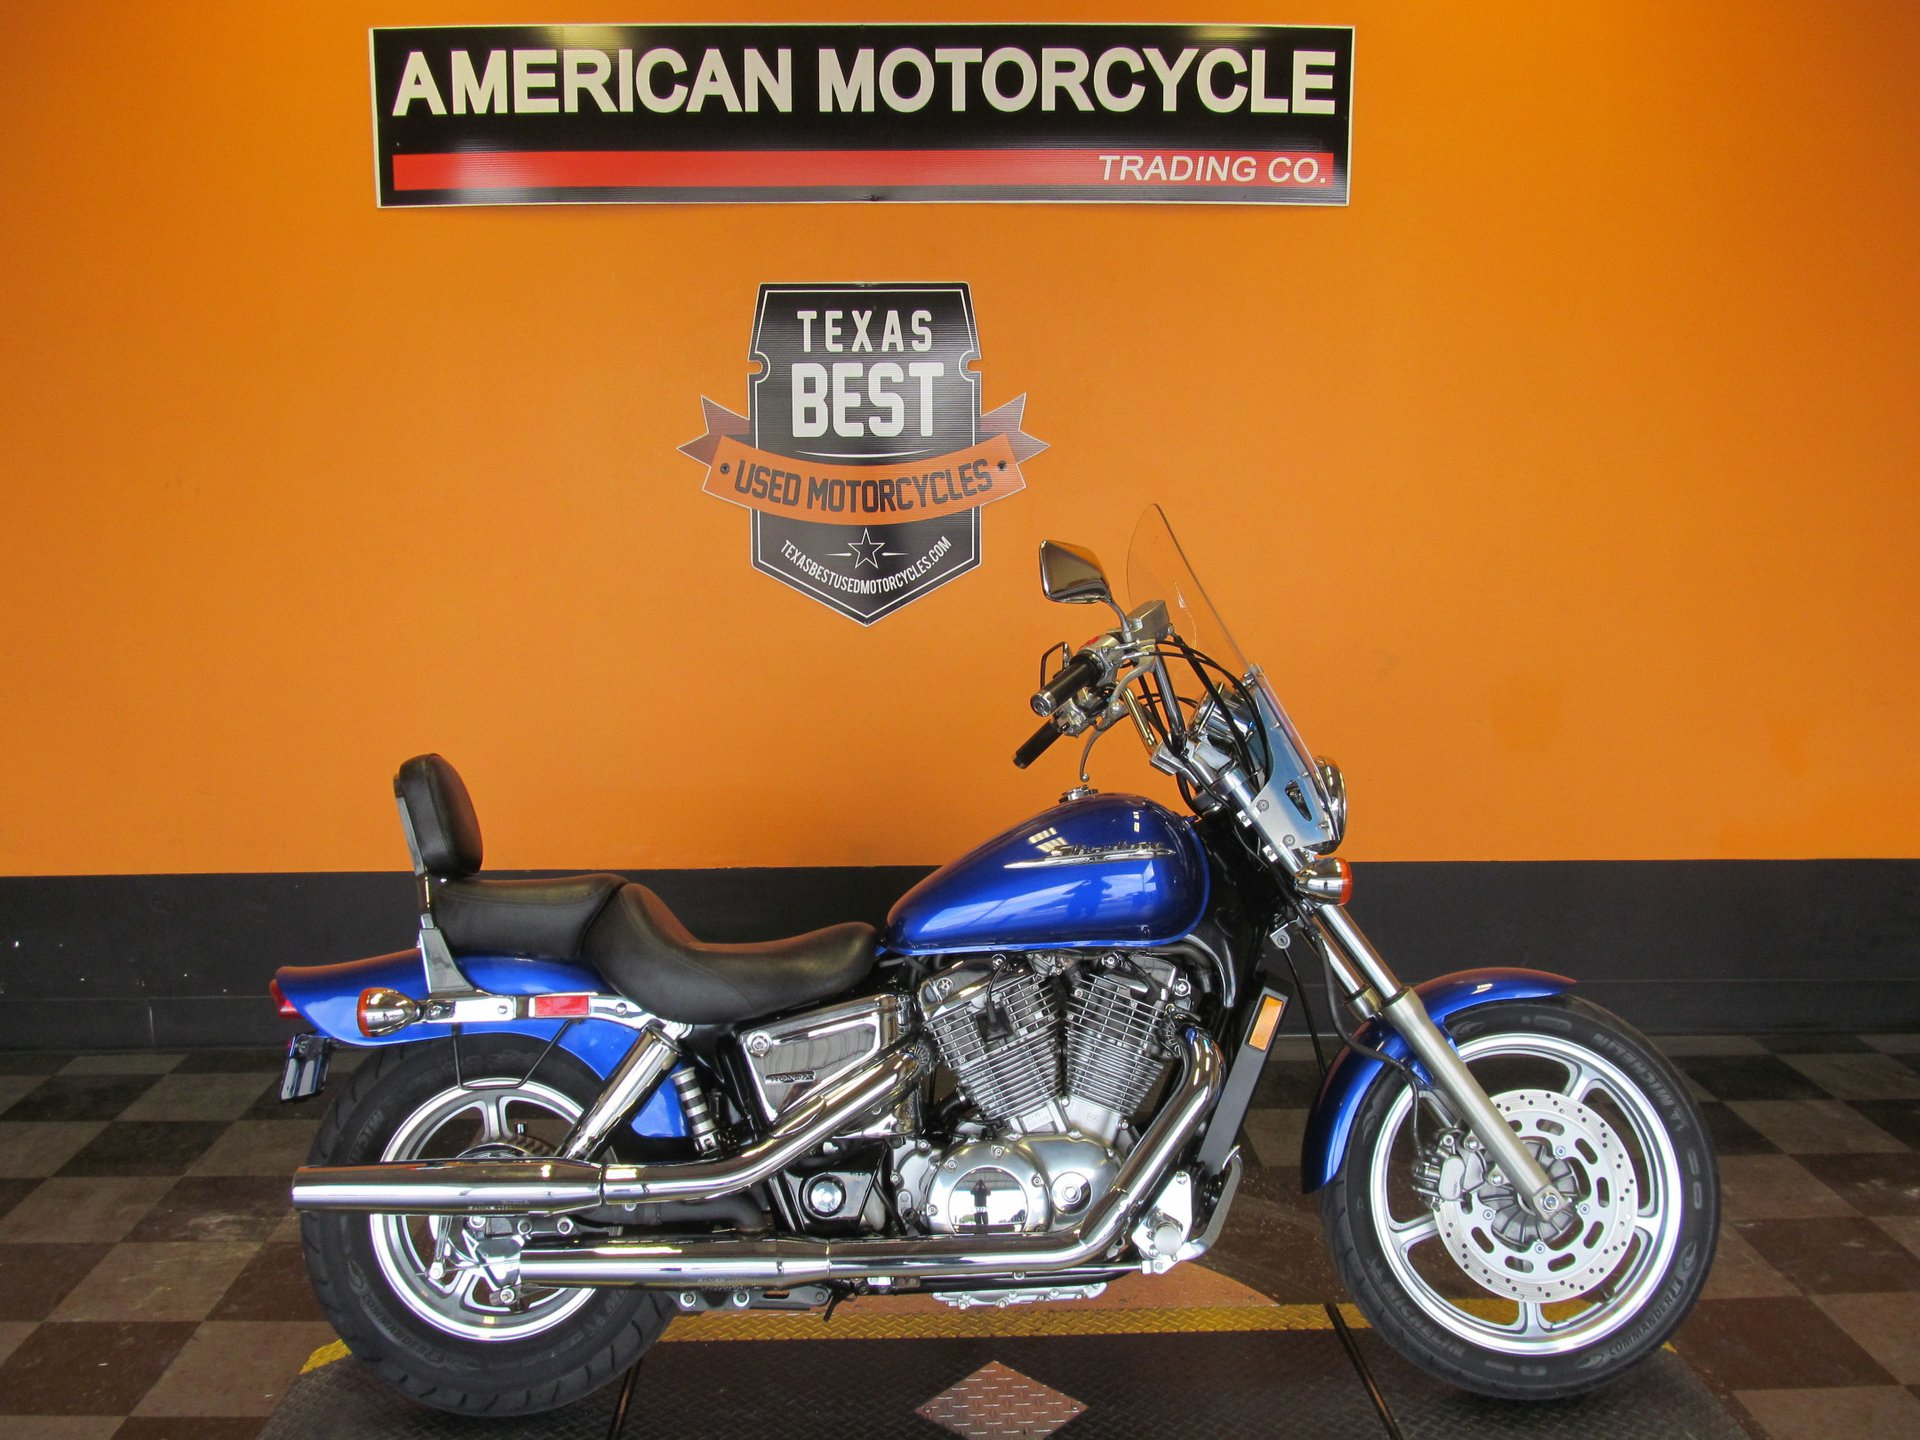 2006 honda shadow spirit vt1100c